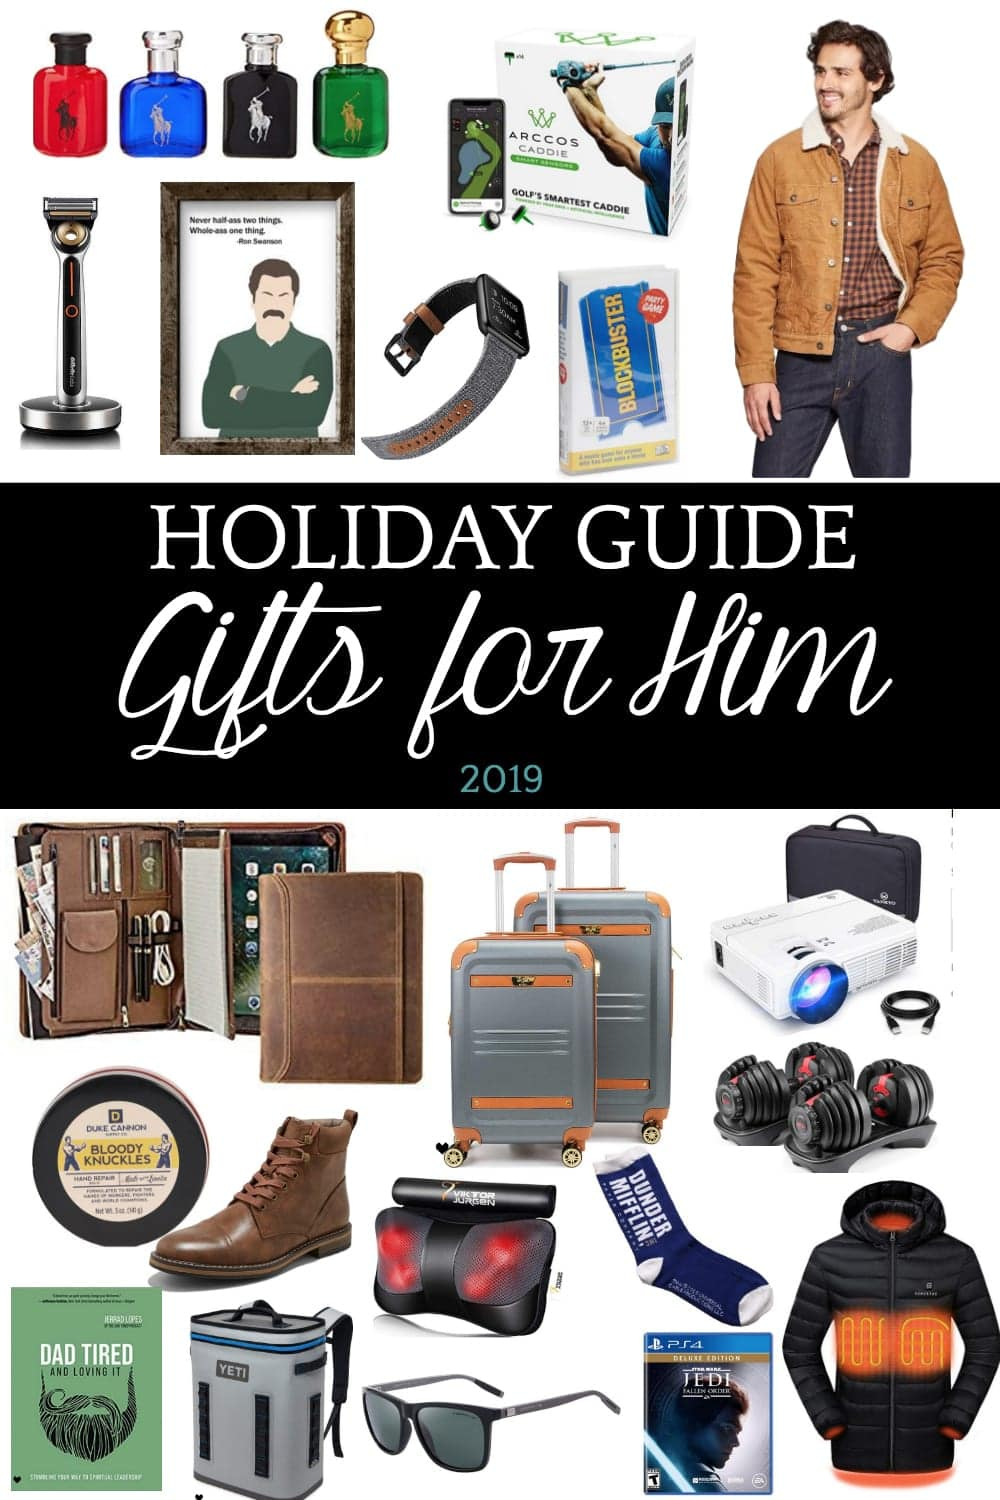 50 of the best gifts for him for 2019 with researched top-rated favorites for the gamer, handyman, outdoorsman, golfer, techy, dad, businessman, and foodie. #giftguide #christmasgiftguide #holidaygiftguide #giftsforhim #giftideasforhim #giftsformen #giftideasformen